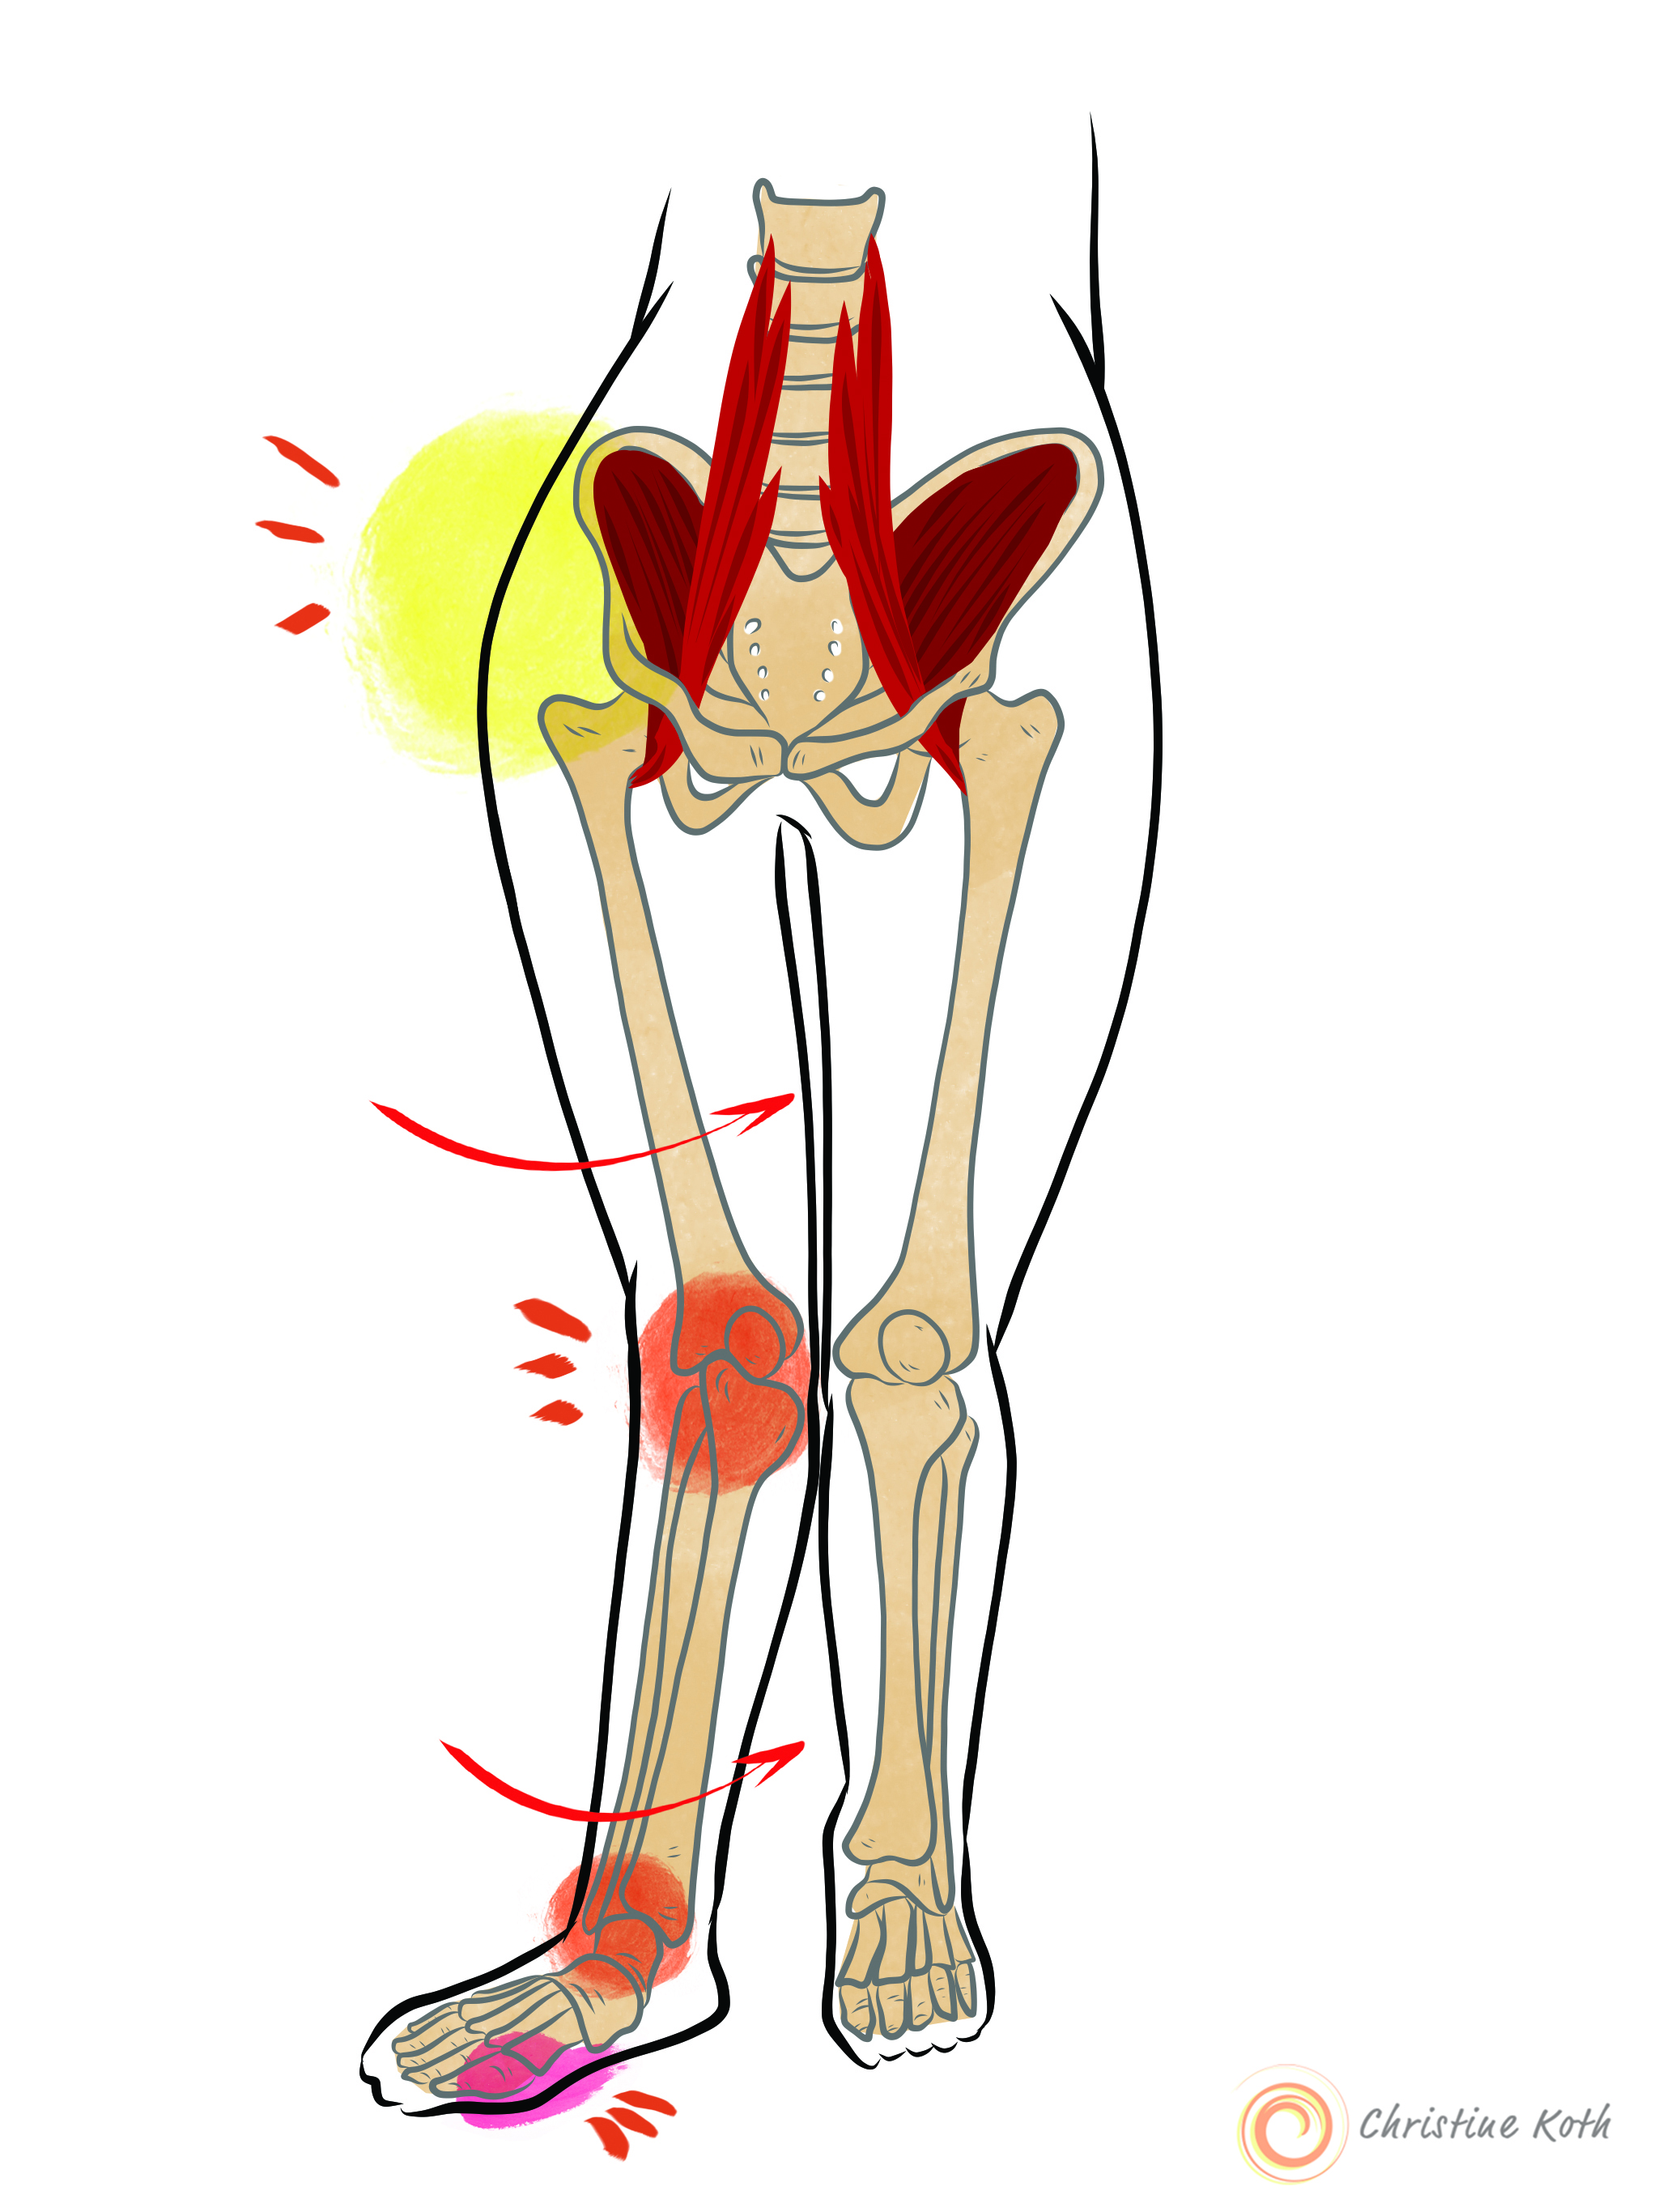 The iliacus rotates the pelvis forward and affect the entire body